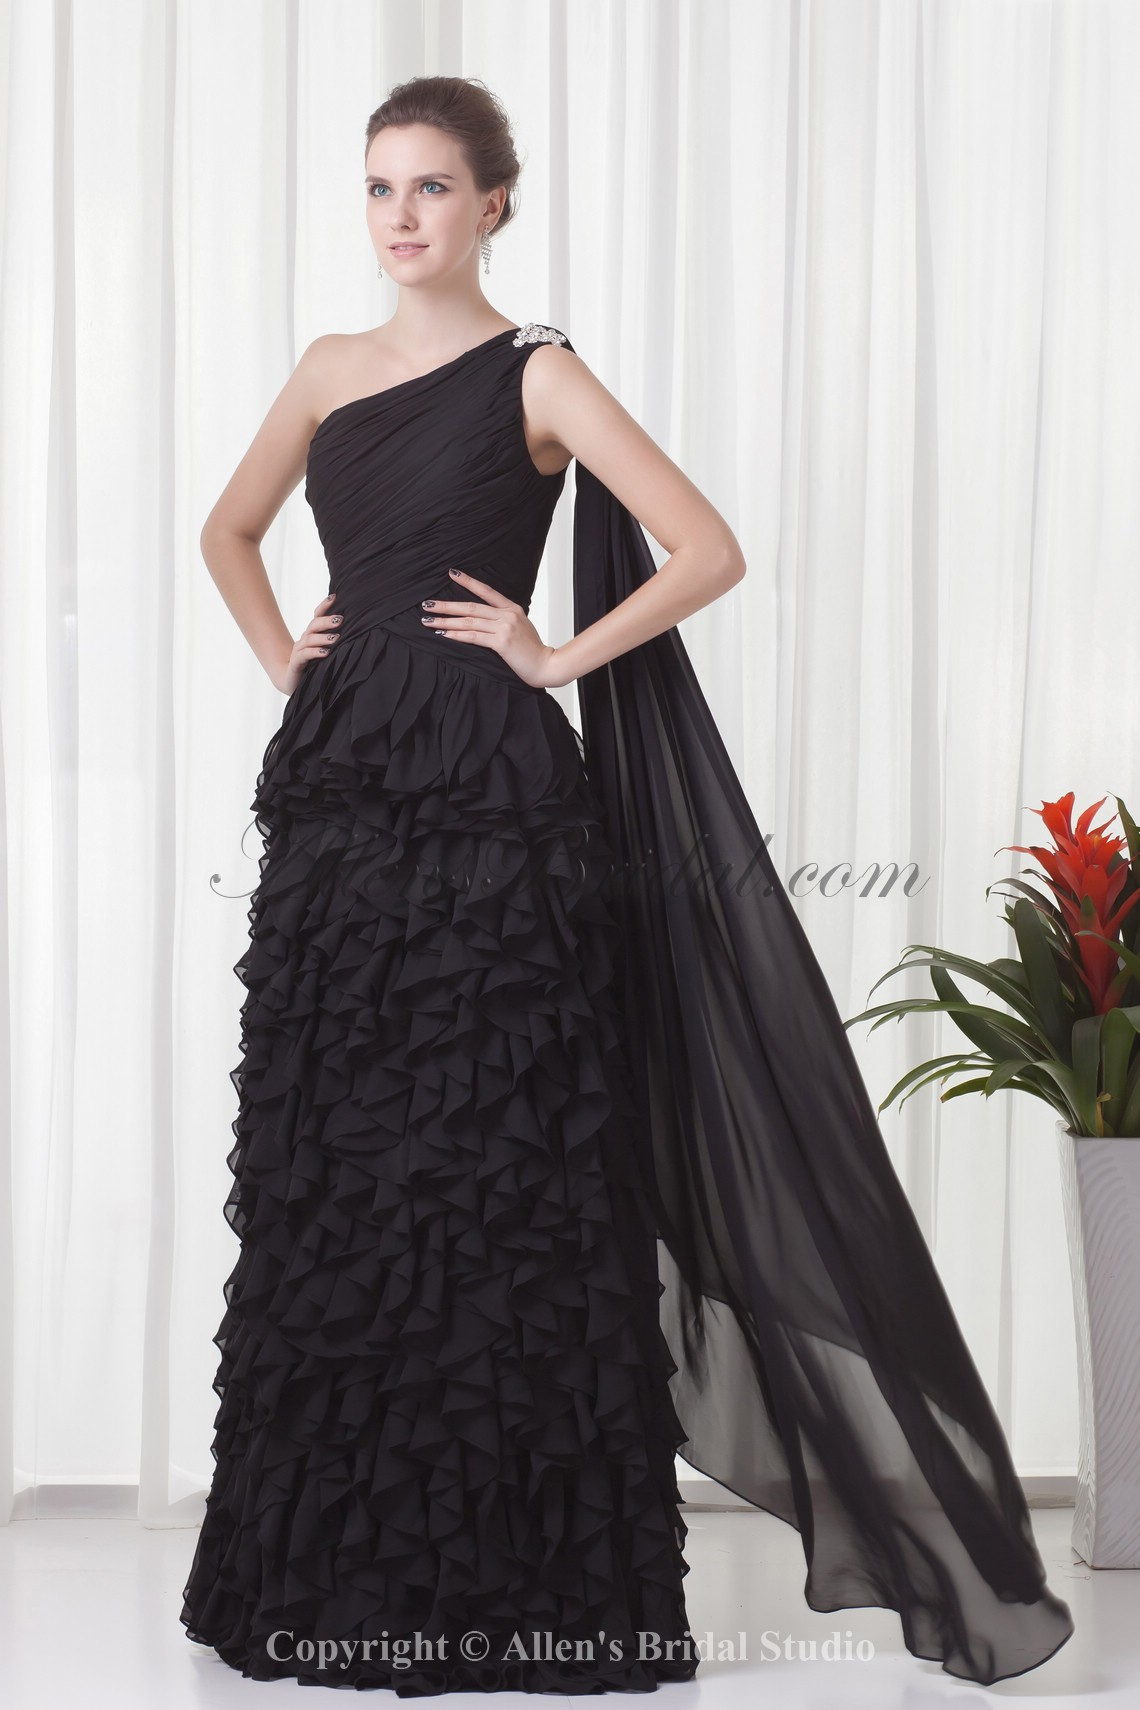 /280-2236/chiffon-asymmetrical-neckline-column-floor-length-prom-dress.jpg